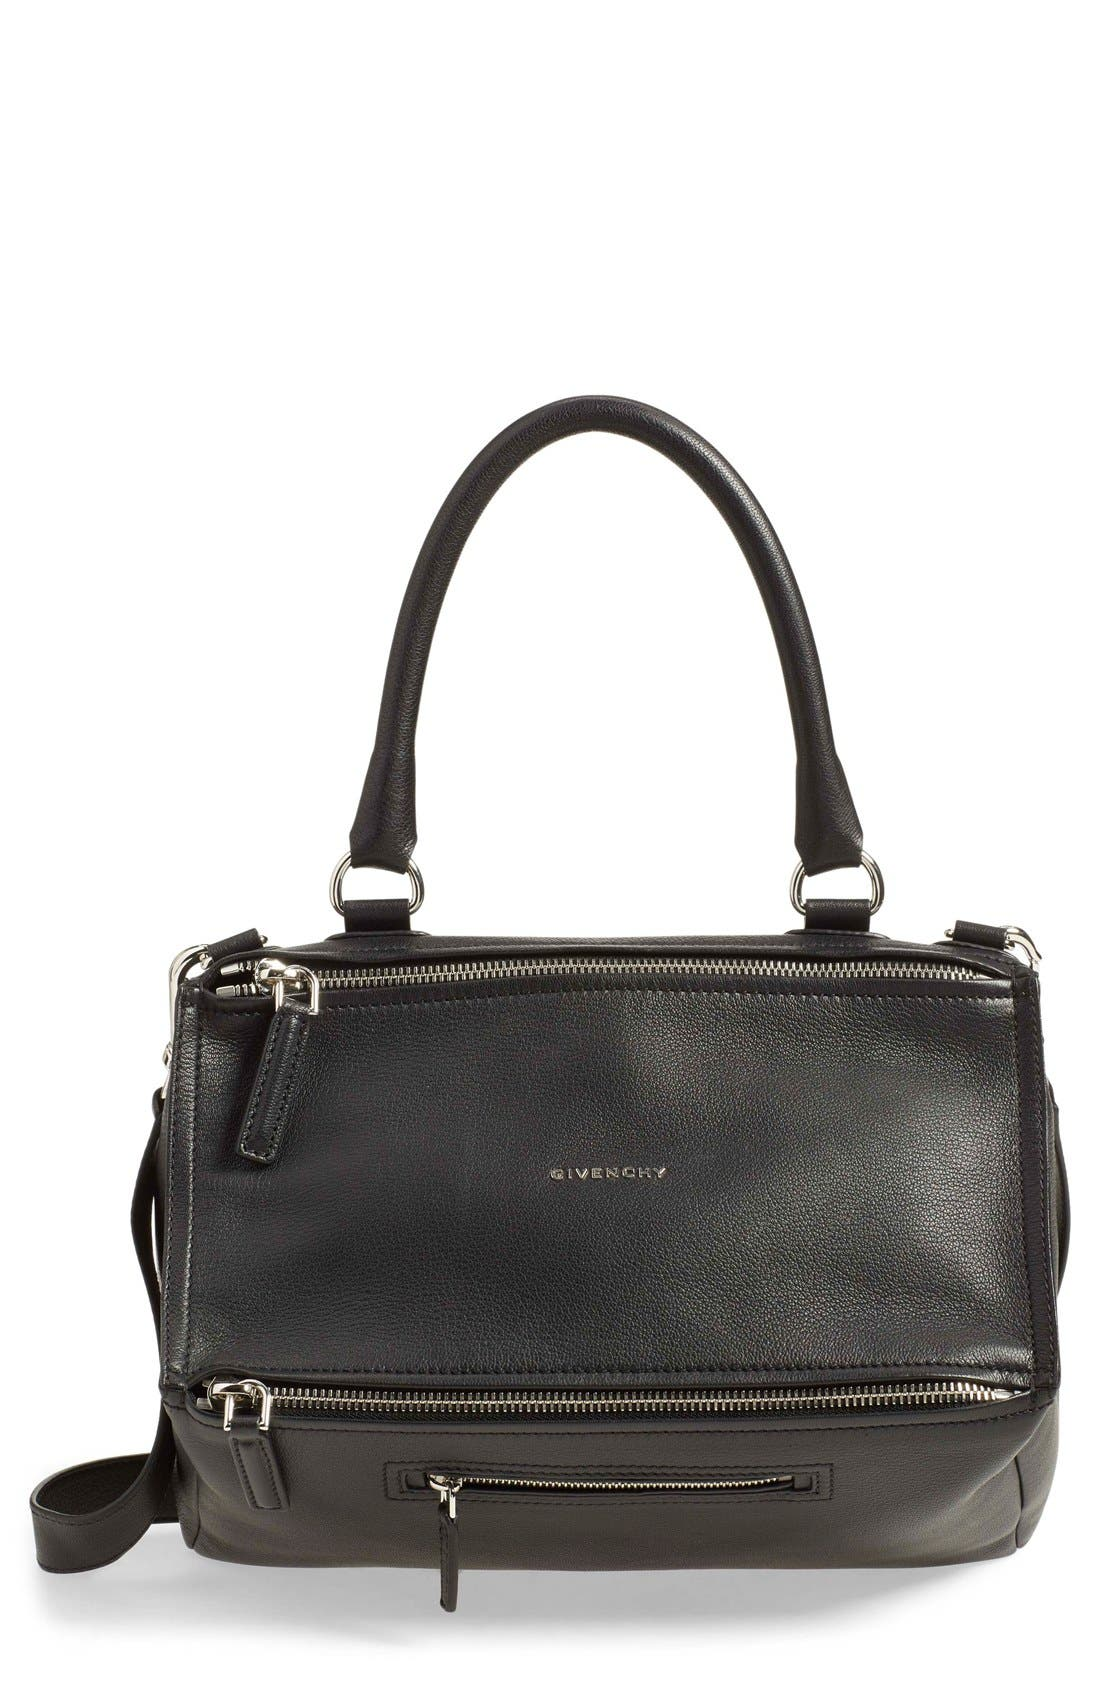 'Medium Pandora' Sugar Leather Satchel,                         Main,                         color, BLACK